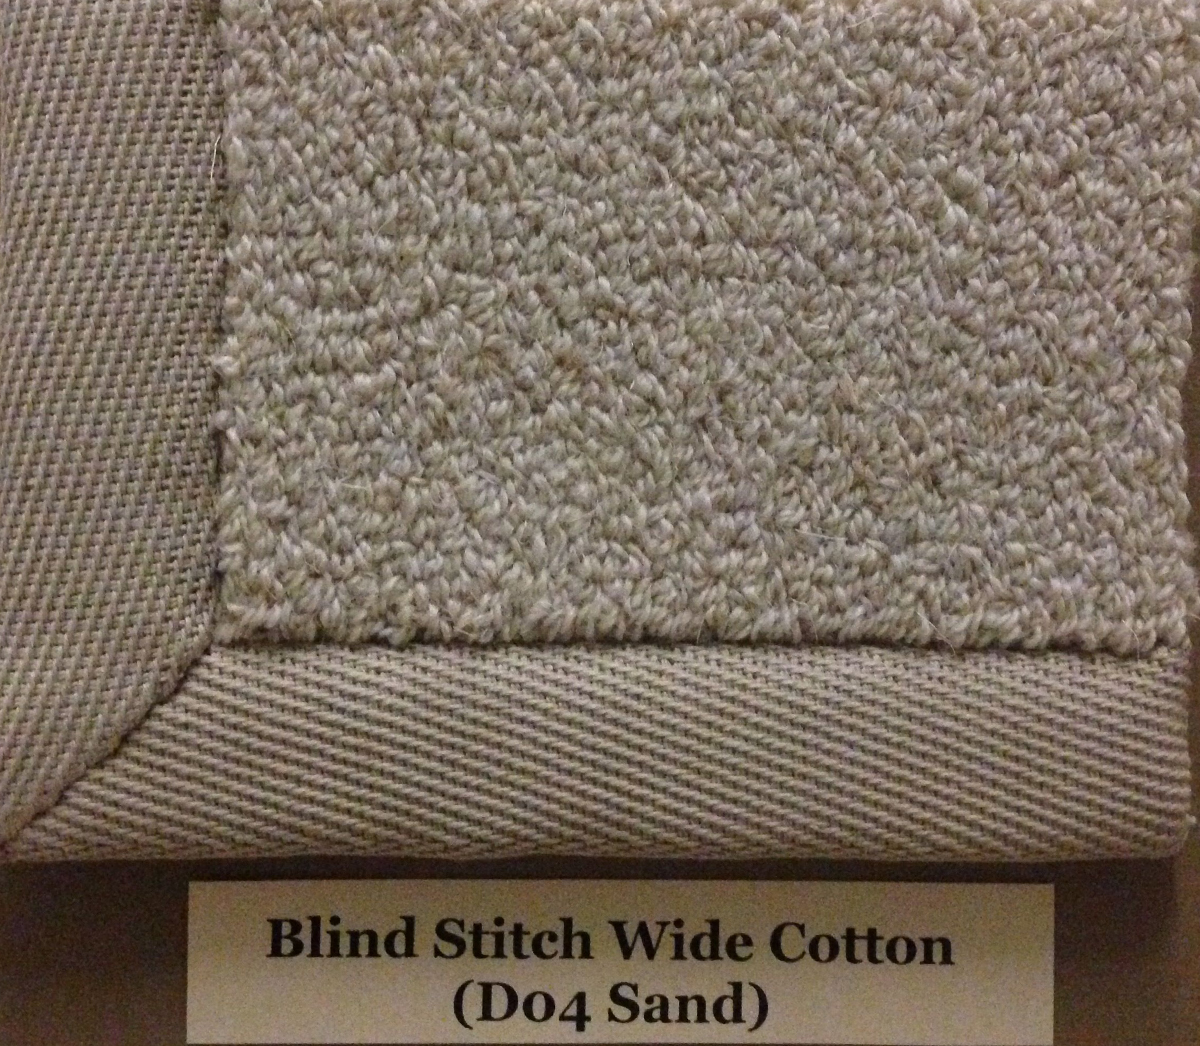 Blind Stitch Wide Cotton